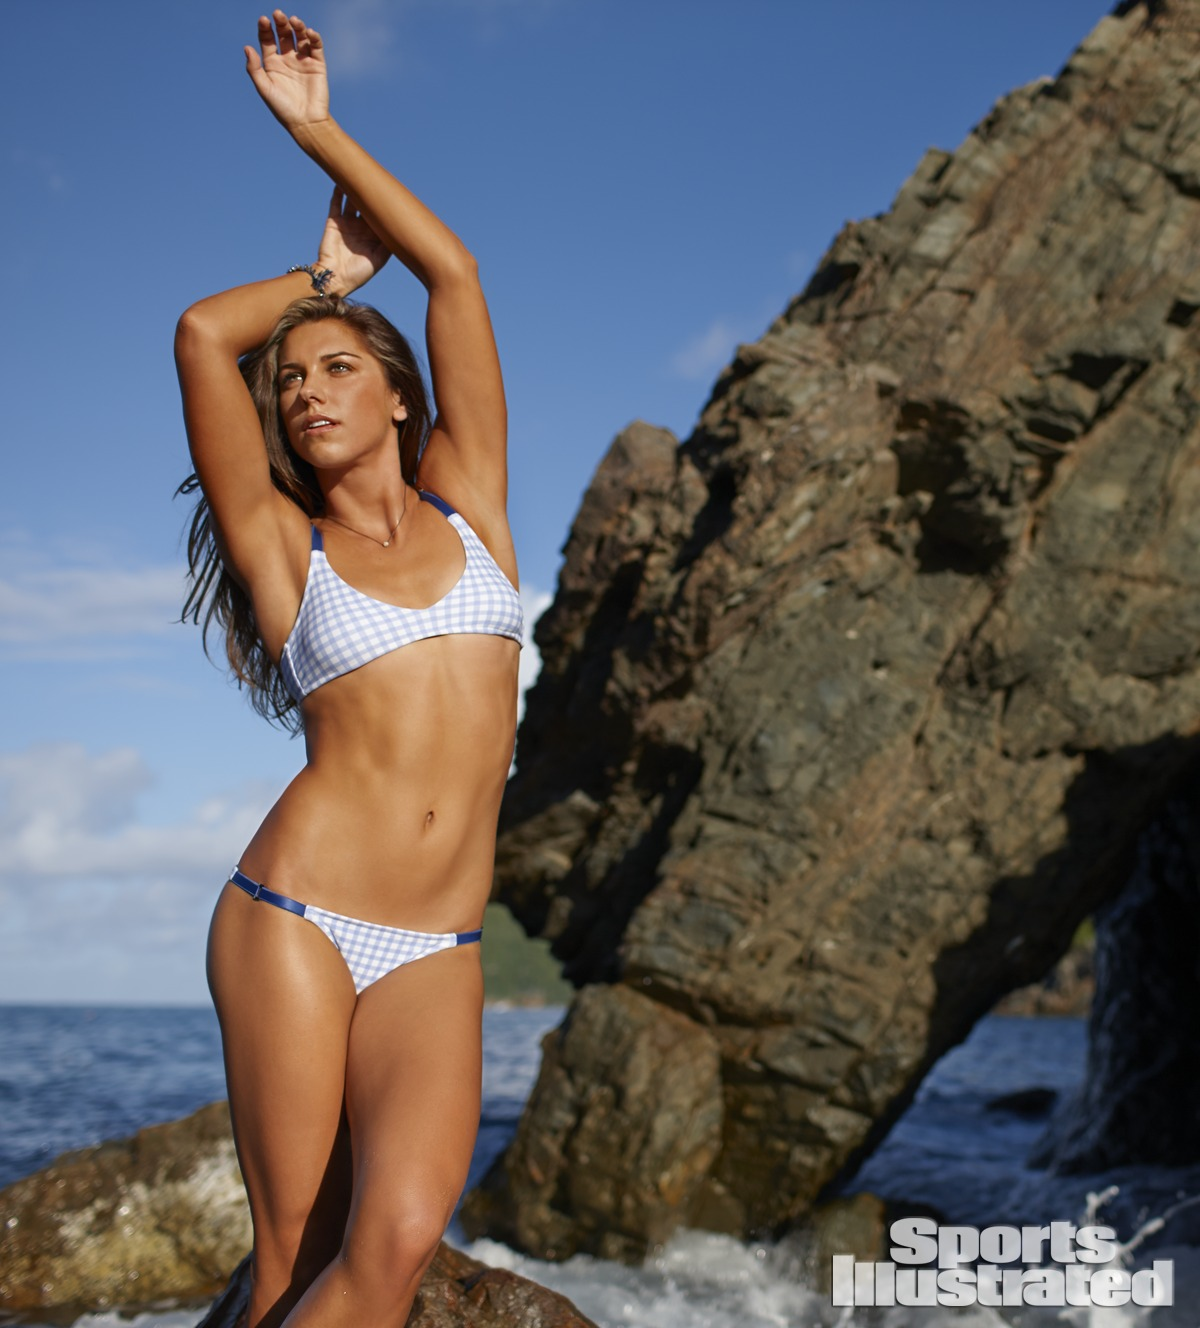 alex morgan hot